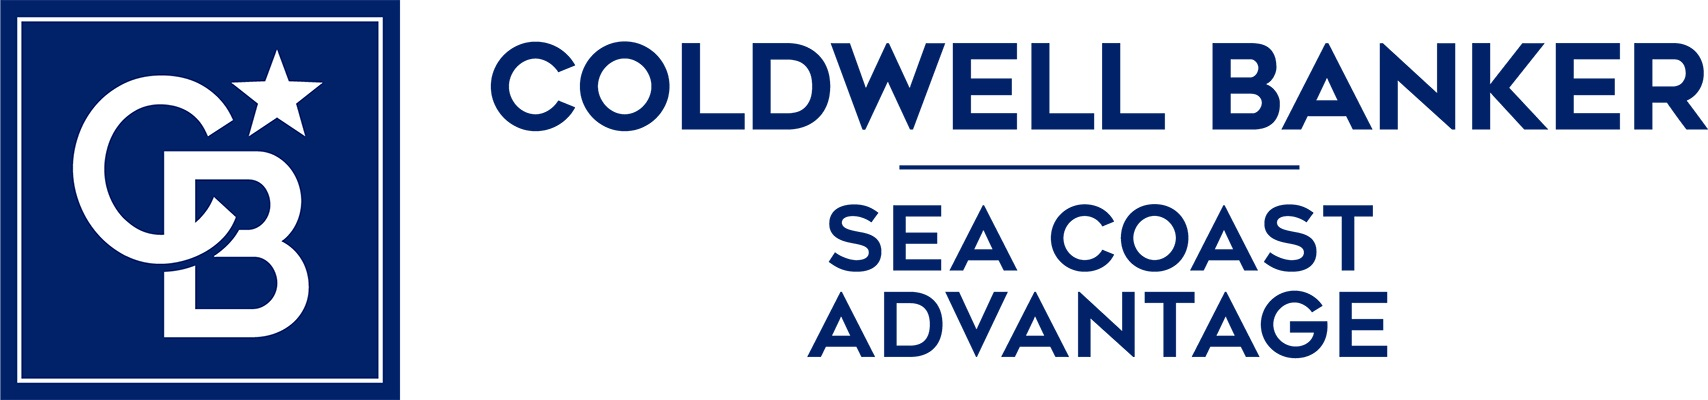 Stephanie Davis - Coldwell Banker Sea Coast Advantage Realty